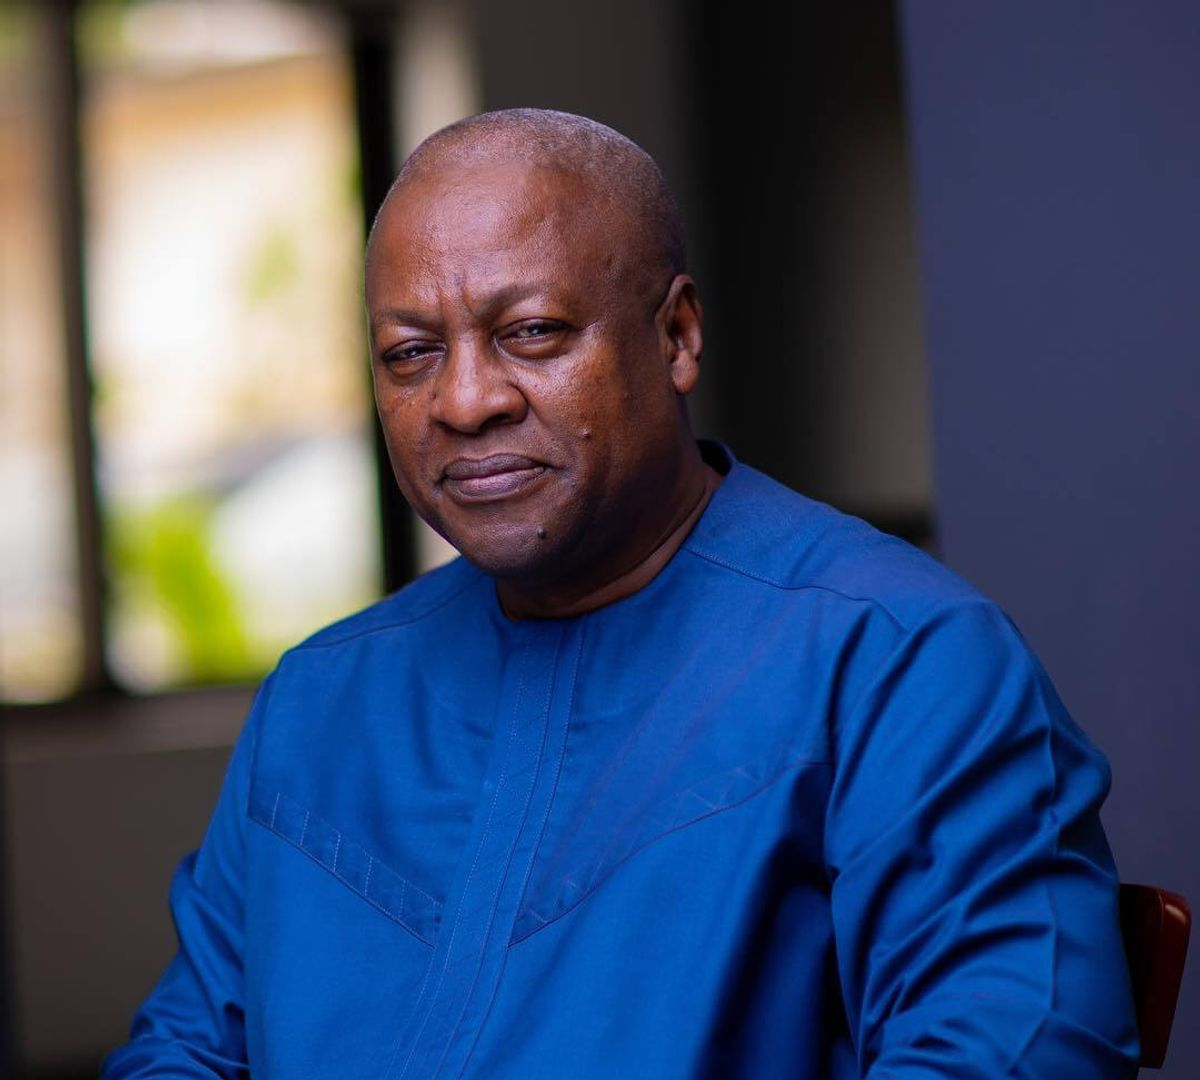 Professionals And Educated Personnel Will Be Deployed To Monitor The 2024 Polls- John Dramani Mahama